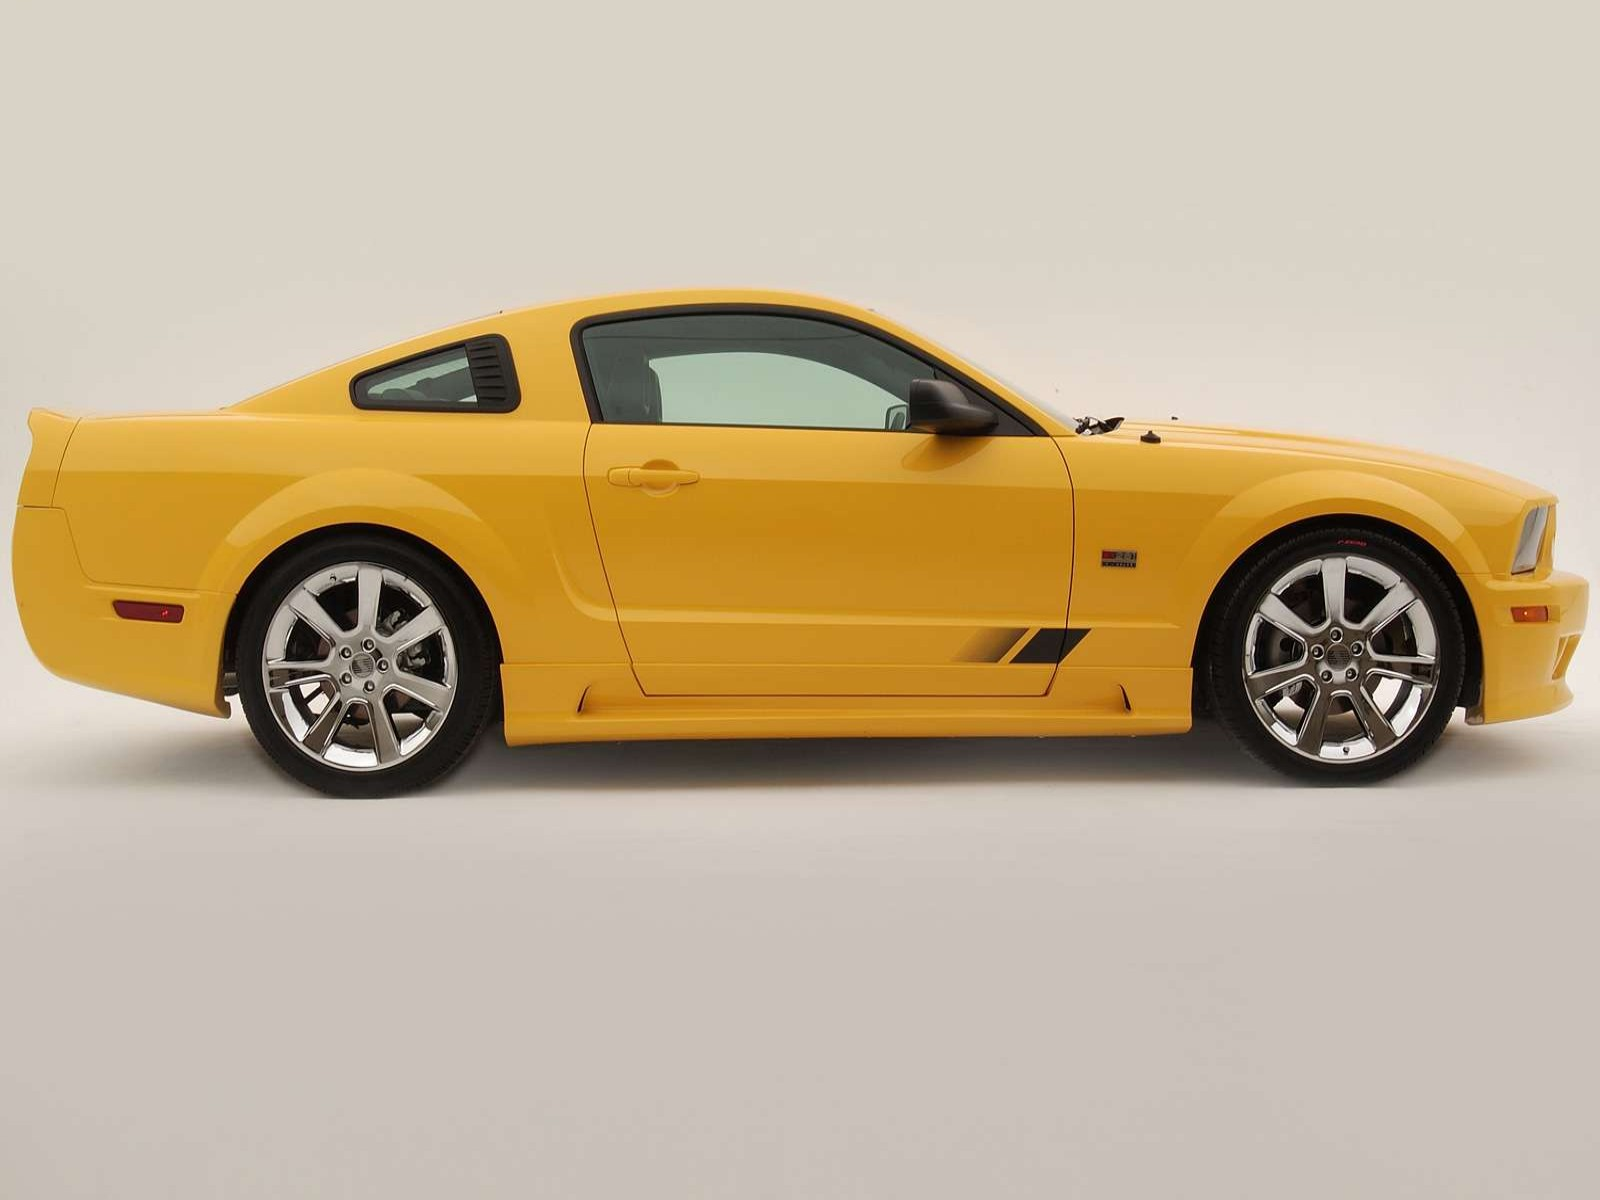 Car Pictures Saleen Ford Mustang S281 3 Valve 2005